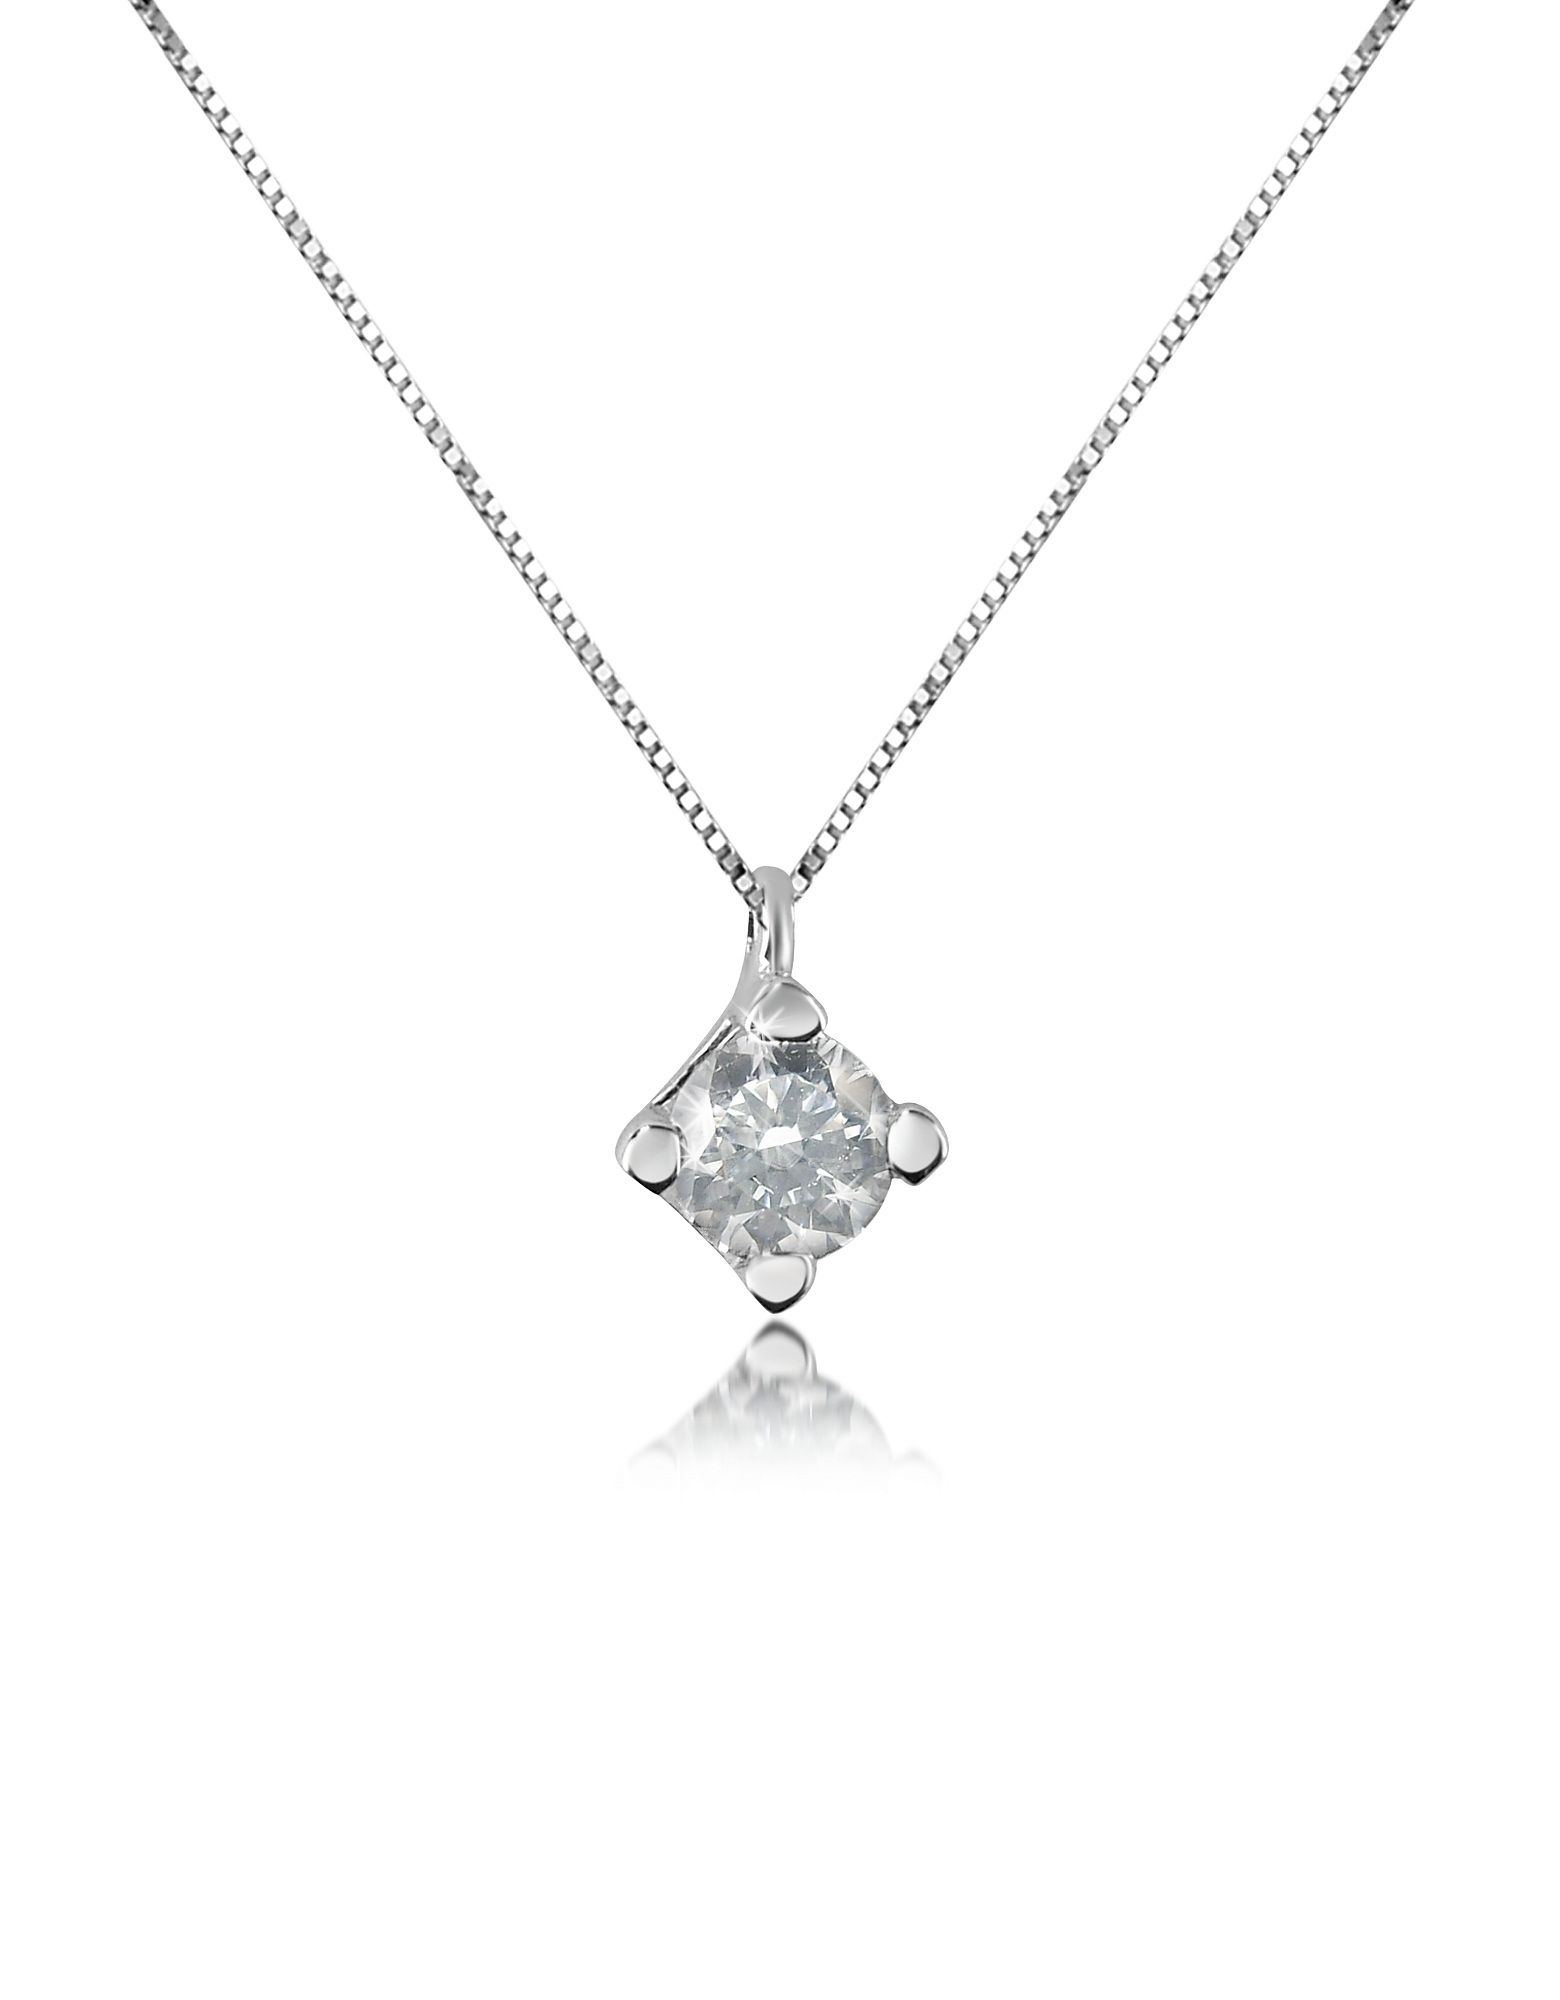 Forzieri Necklaces, 0.15 ct Diamond Solitaire Pendant 18K Gold Necklace